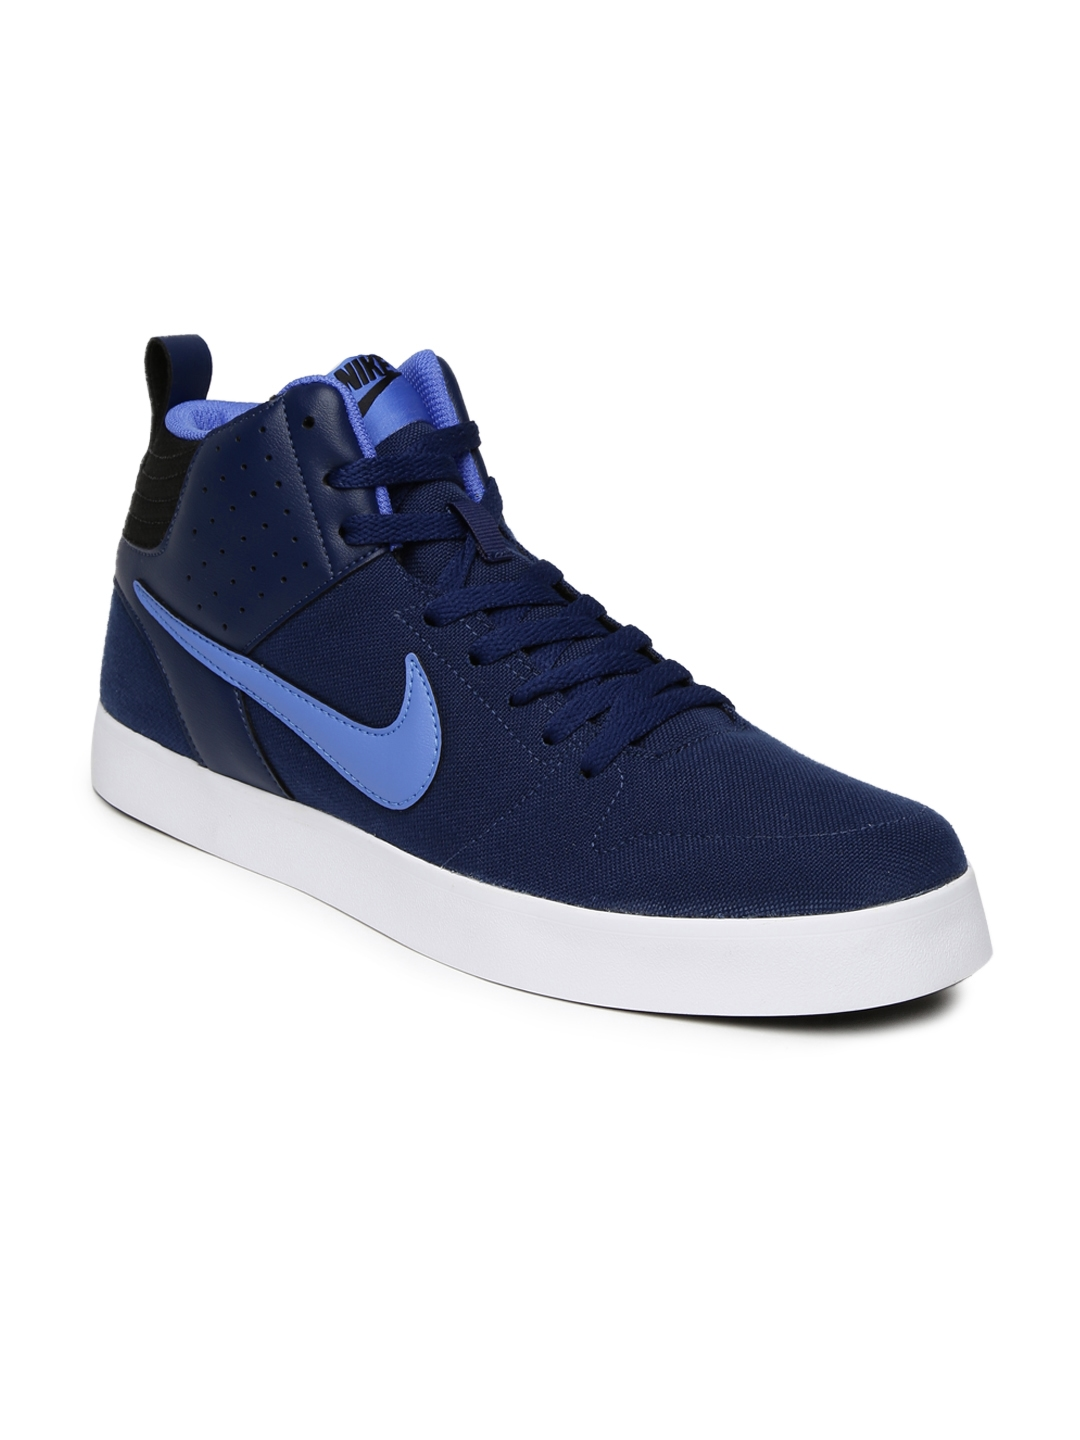 Nike Casual Mid Ankle Shoes | The River City News